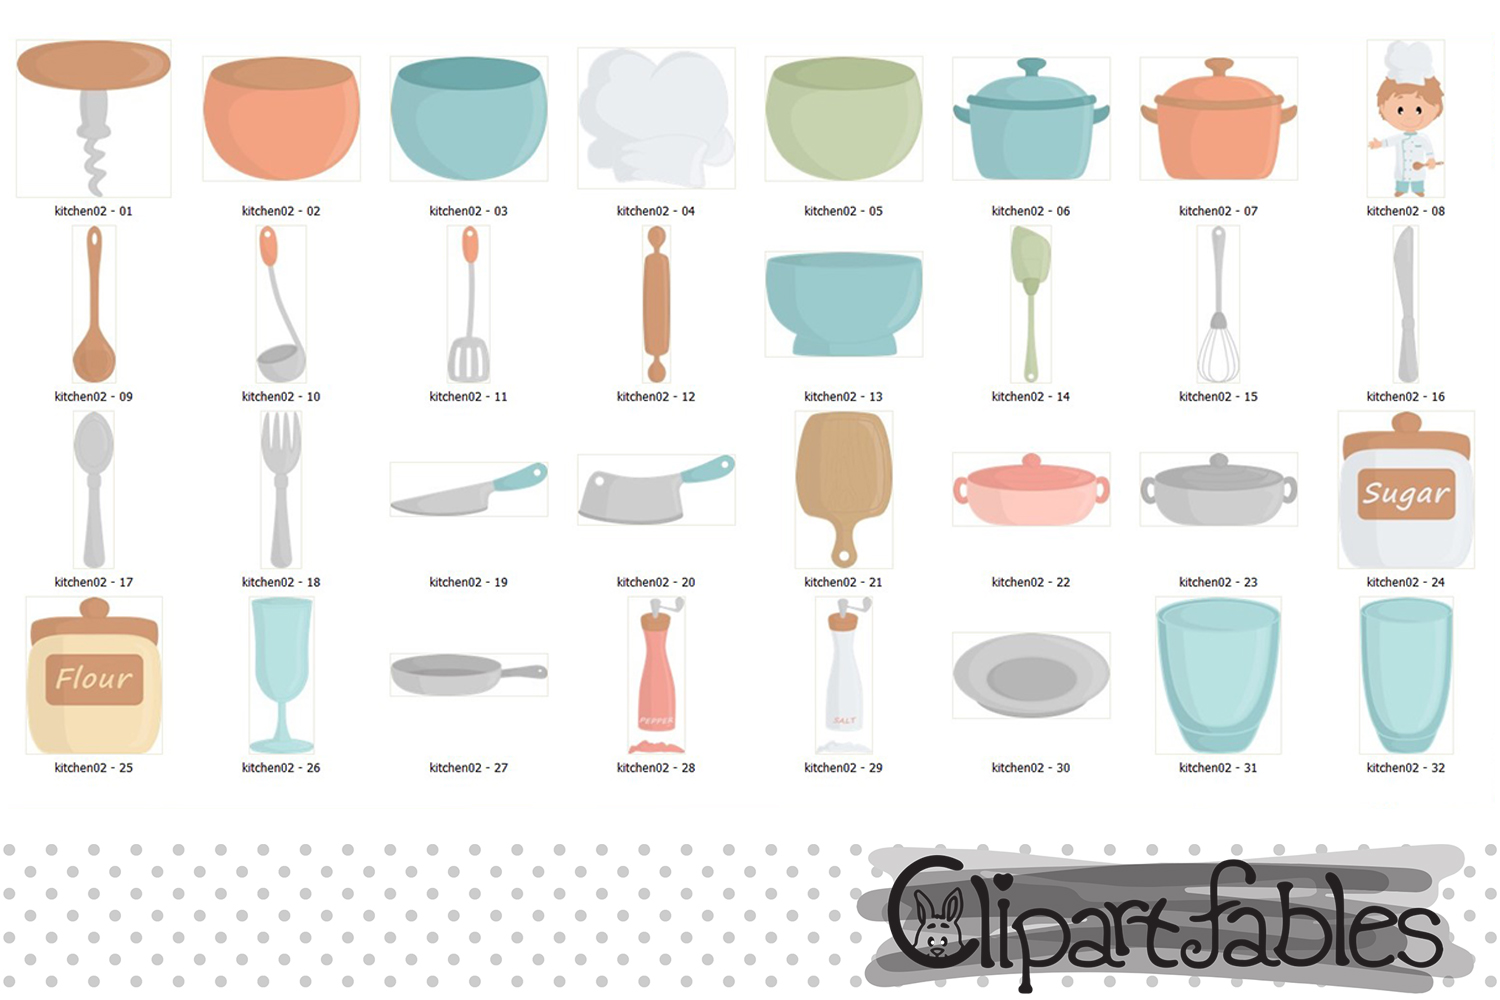 CHEF clipart, Kitchen aid, Cute kitchen party, Cutlery art example image 2